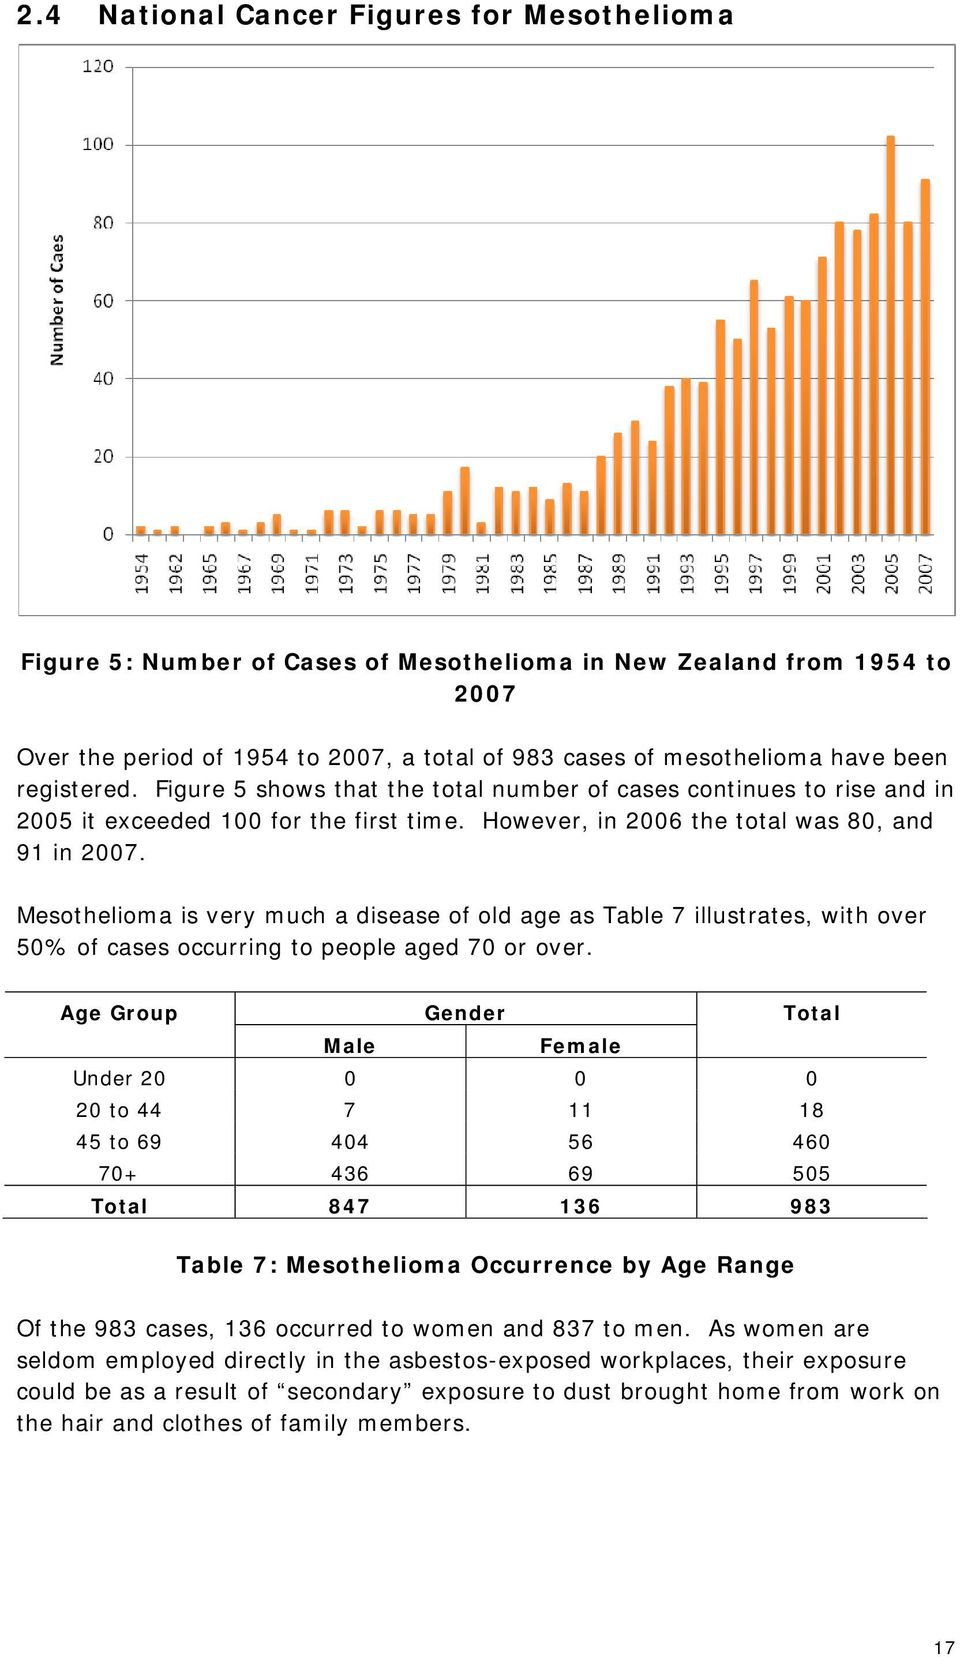 Mesothelioma is very much a disease of old age as Table 7 illustrates, with over 50% of cases occurring to people aged 70 or over.